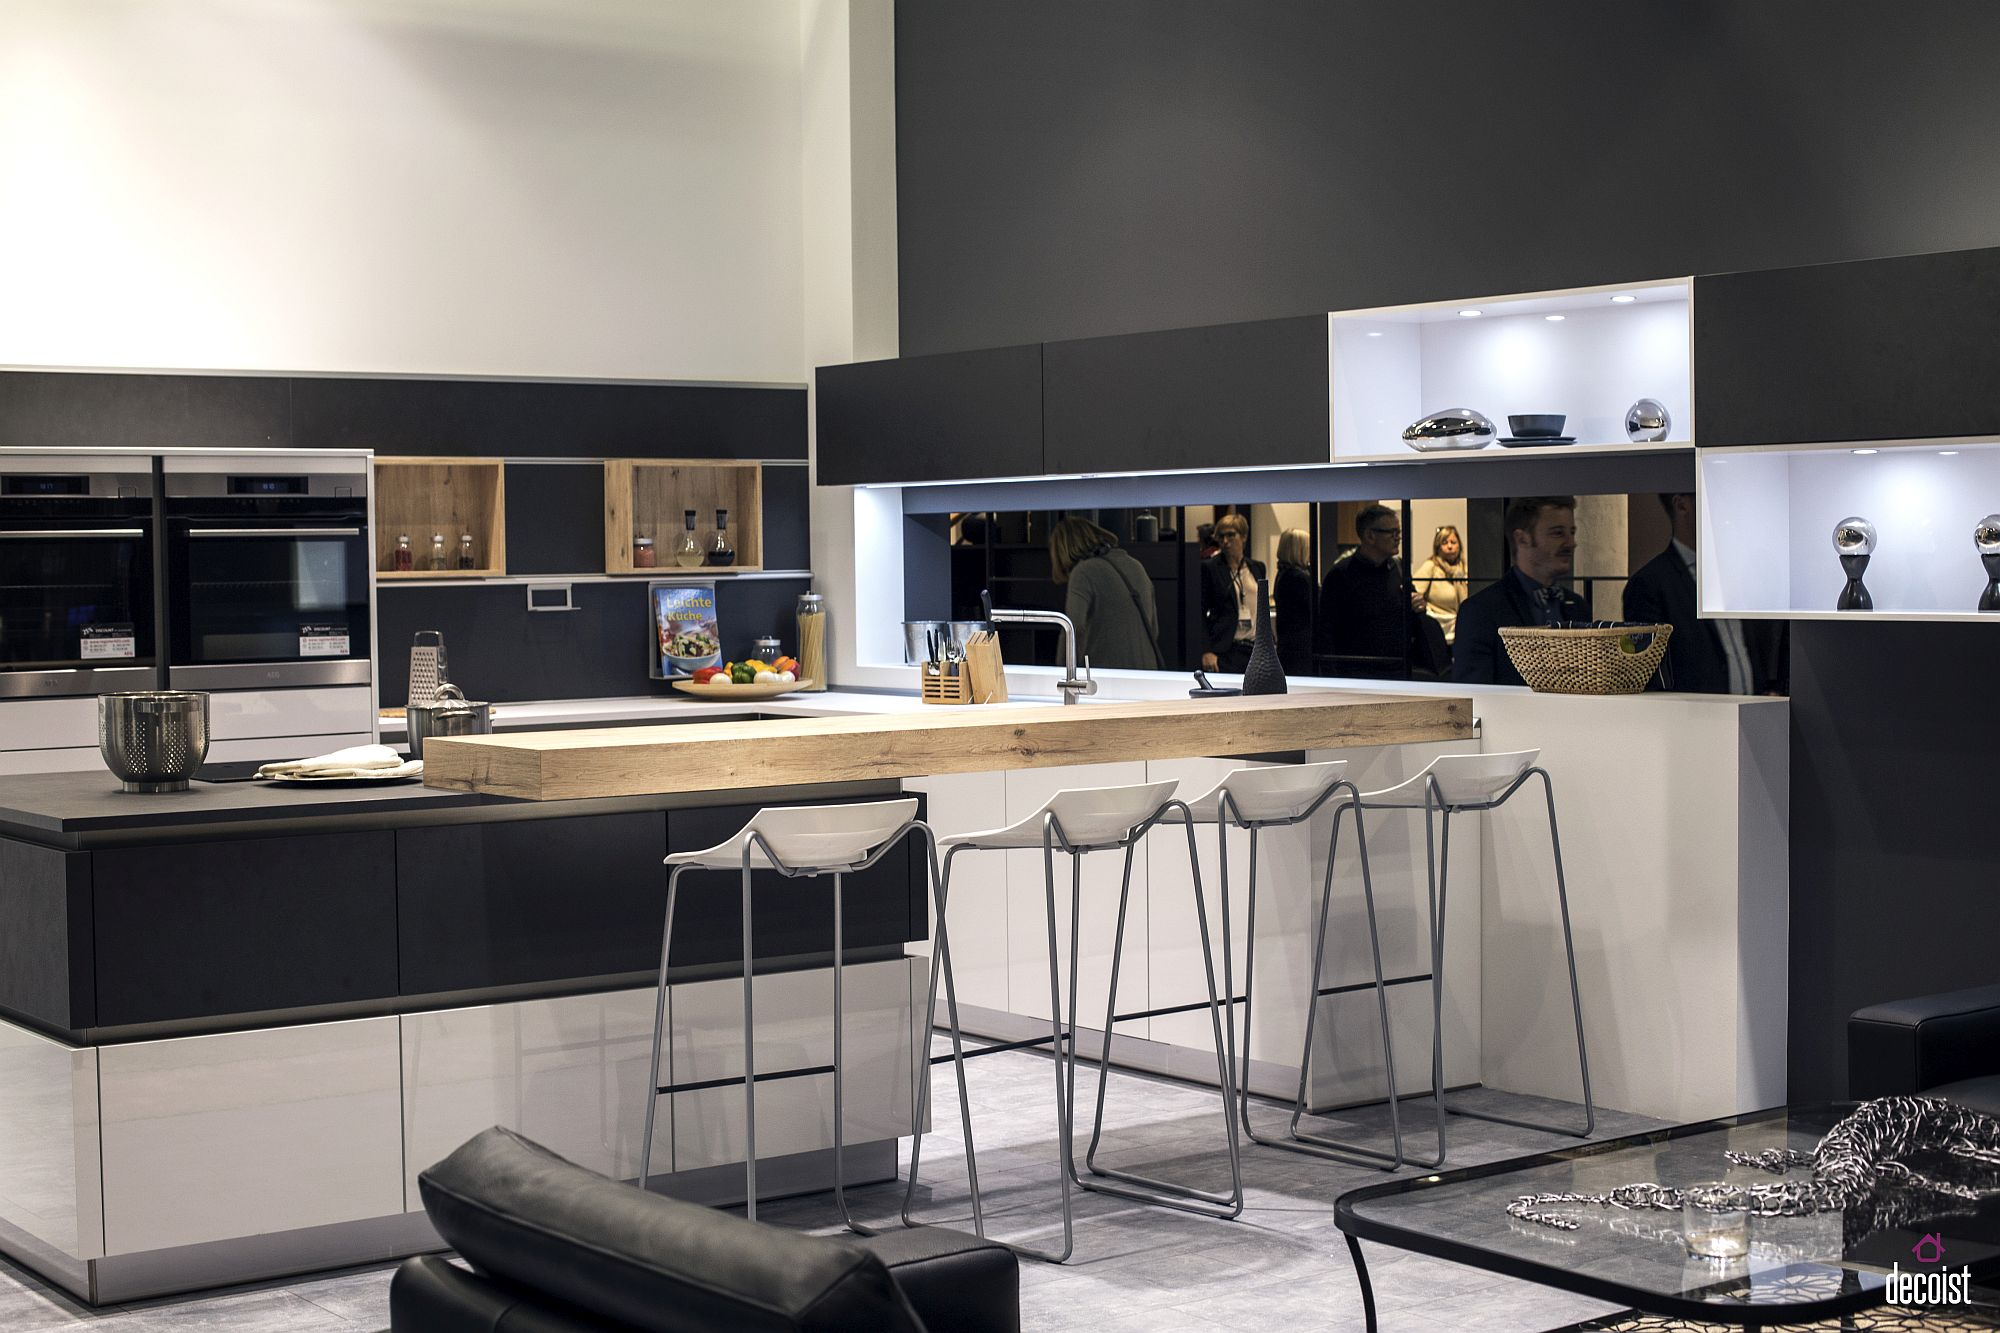 Balanced-use-of-gray-and-white-in-the-modern-kitchen-with-wooden-breakfast-bar